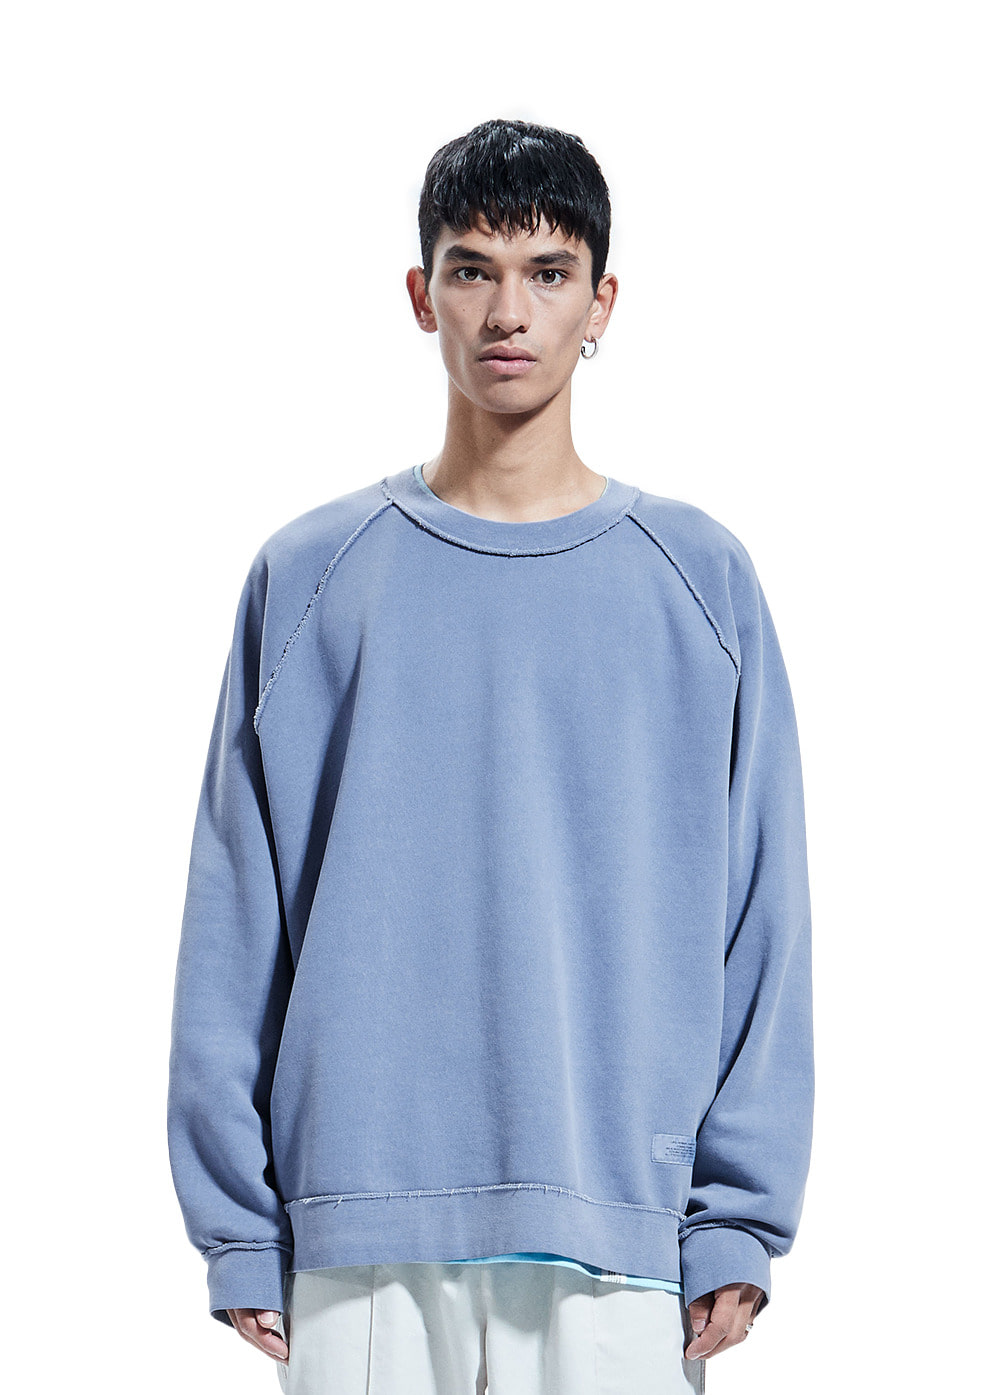 P-DYED RAGLAN SWEATSHIRT blue